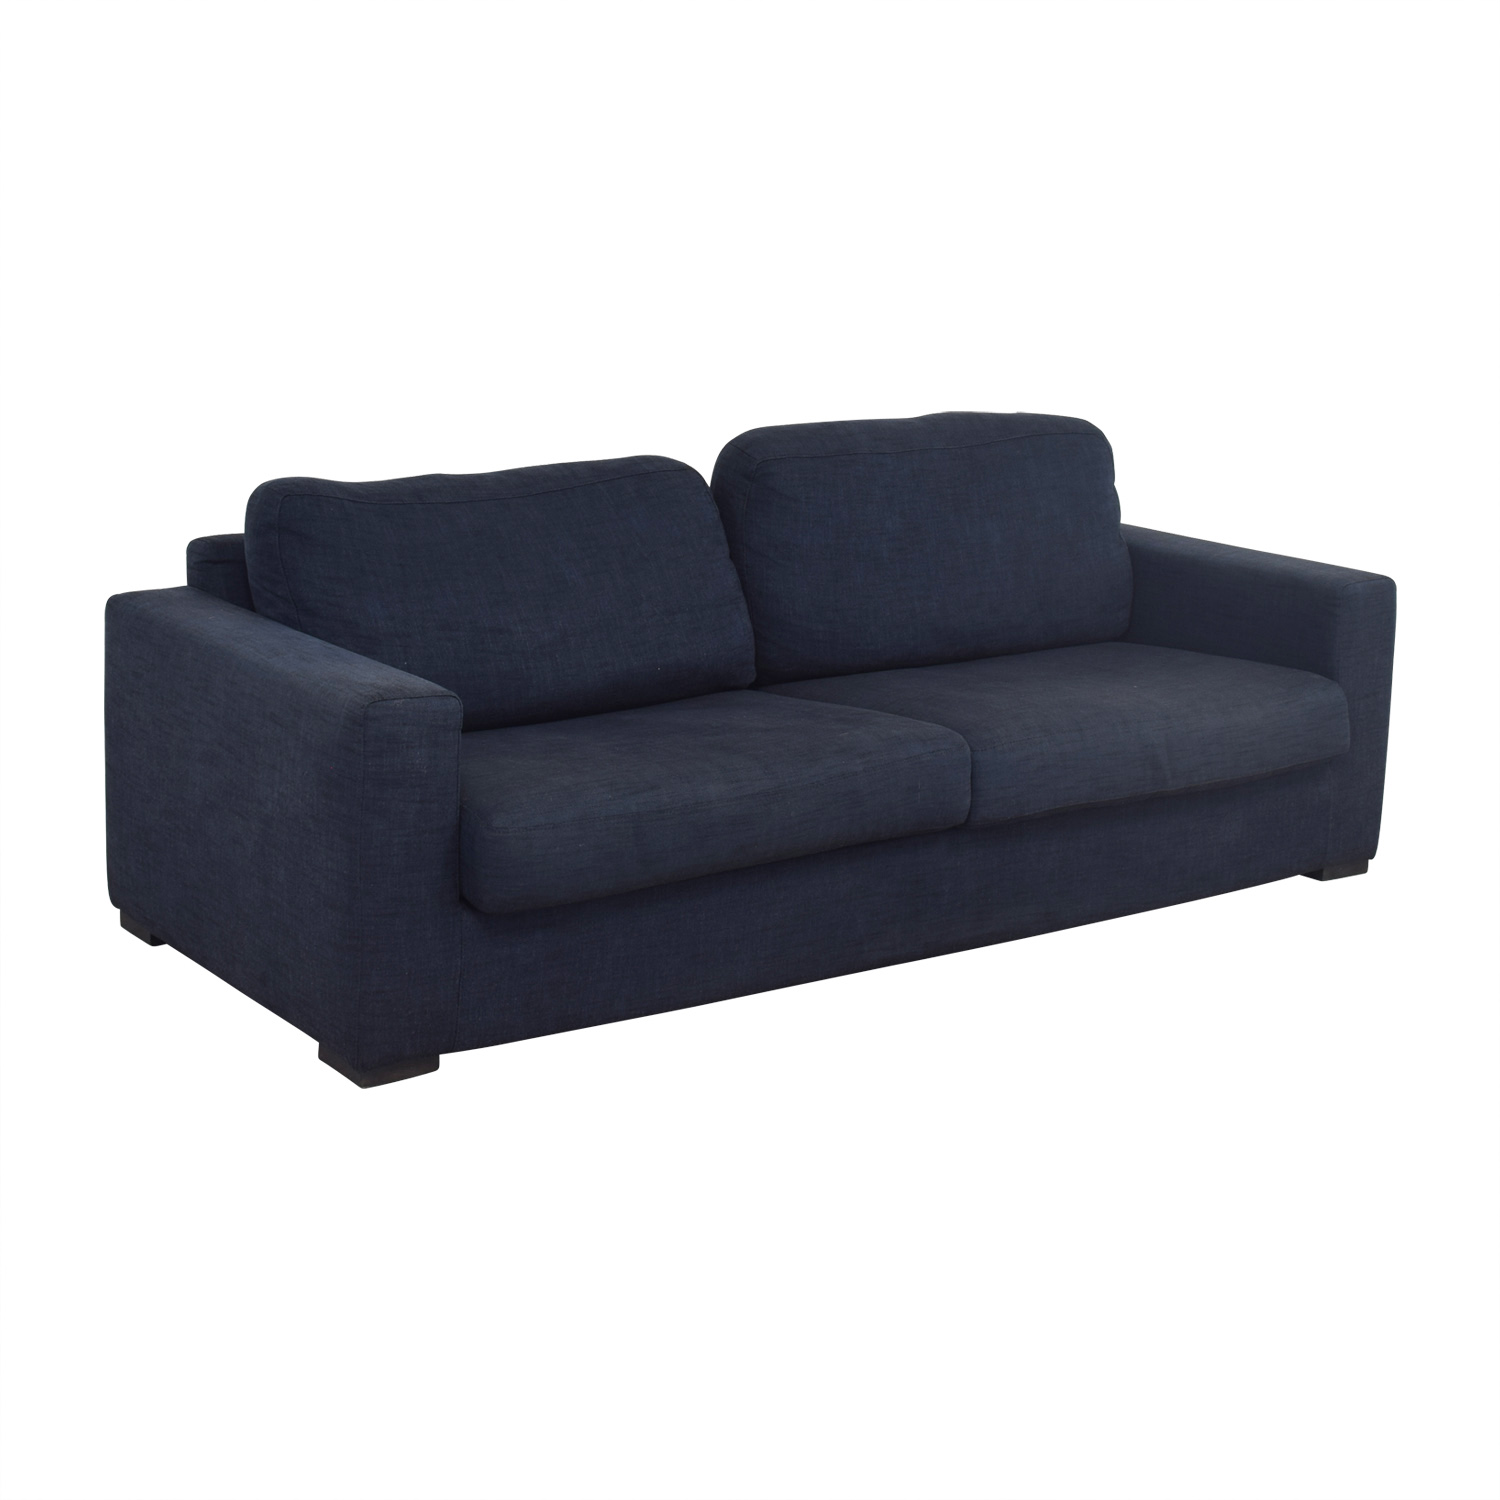 Meridiani Meridiani Italian Navy Linen Two-Cushion Couch used